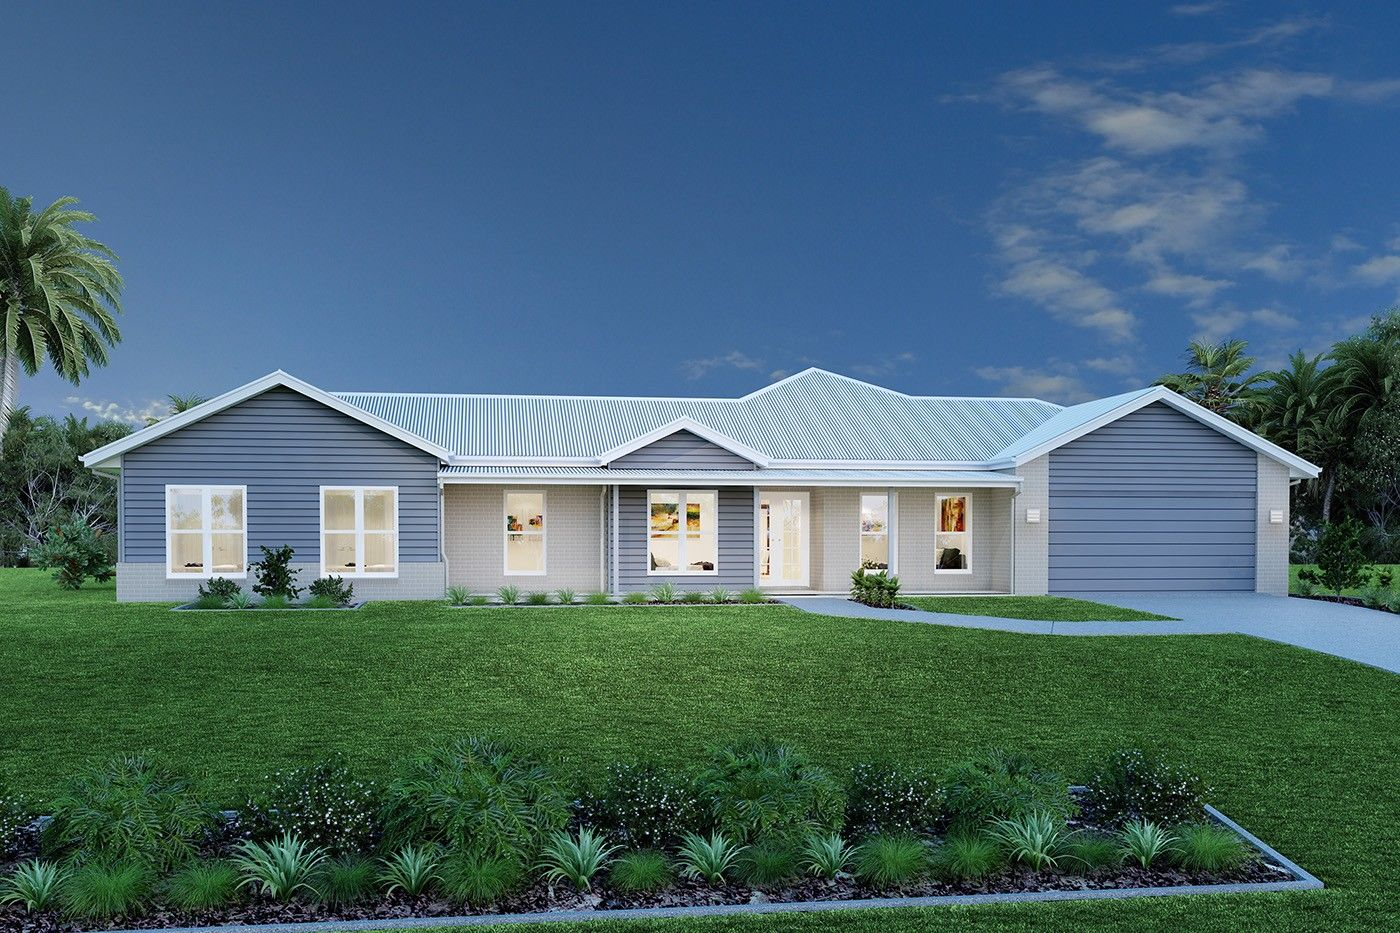 Lot 16, Acreage Central Bucca Rd, Bucca NSW 2450, Image 0